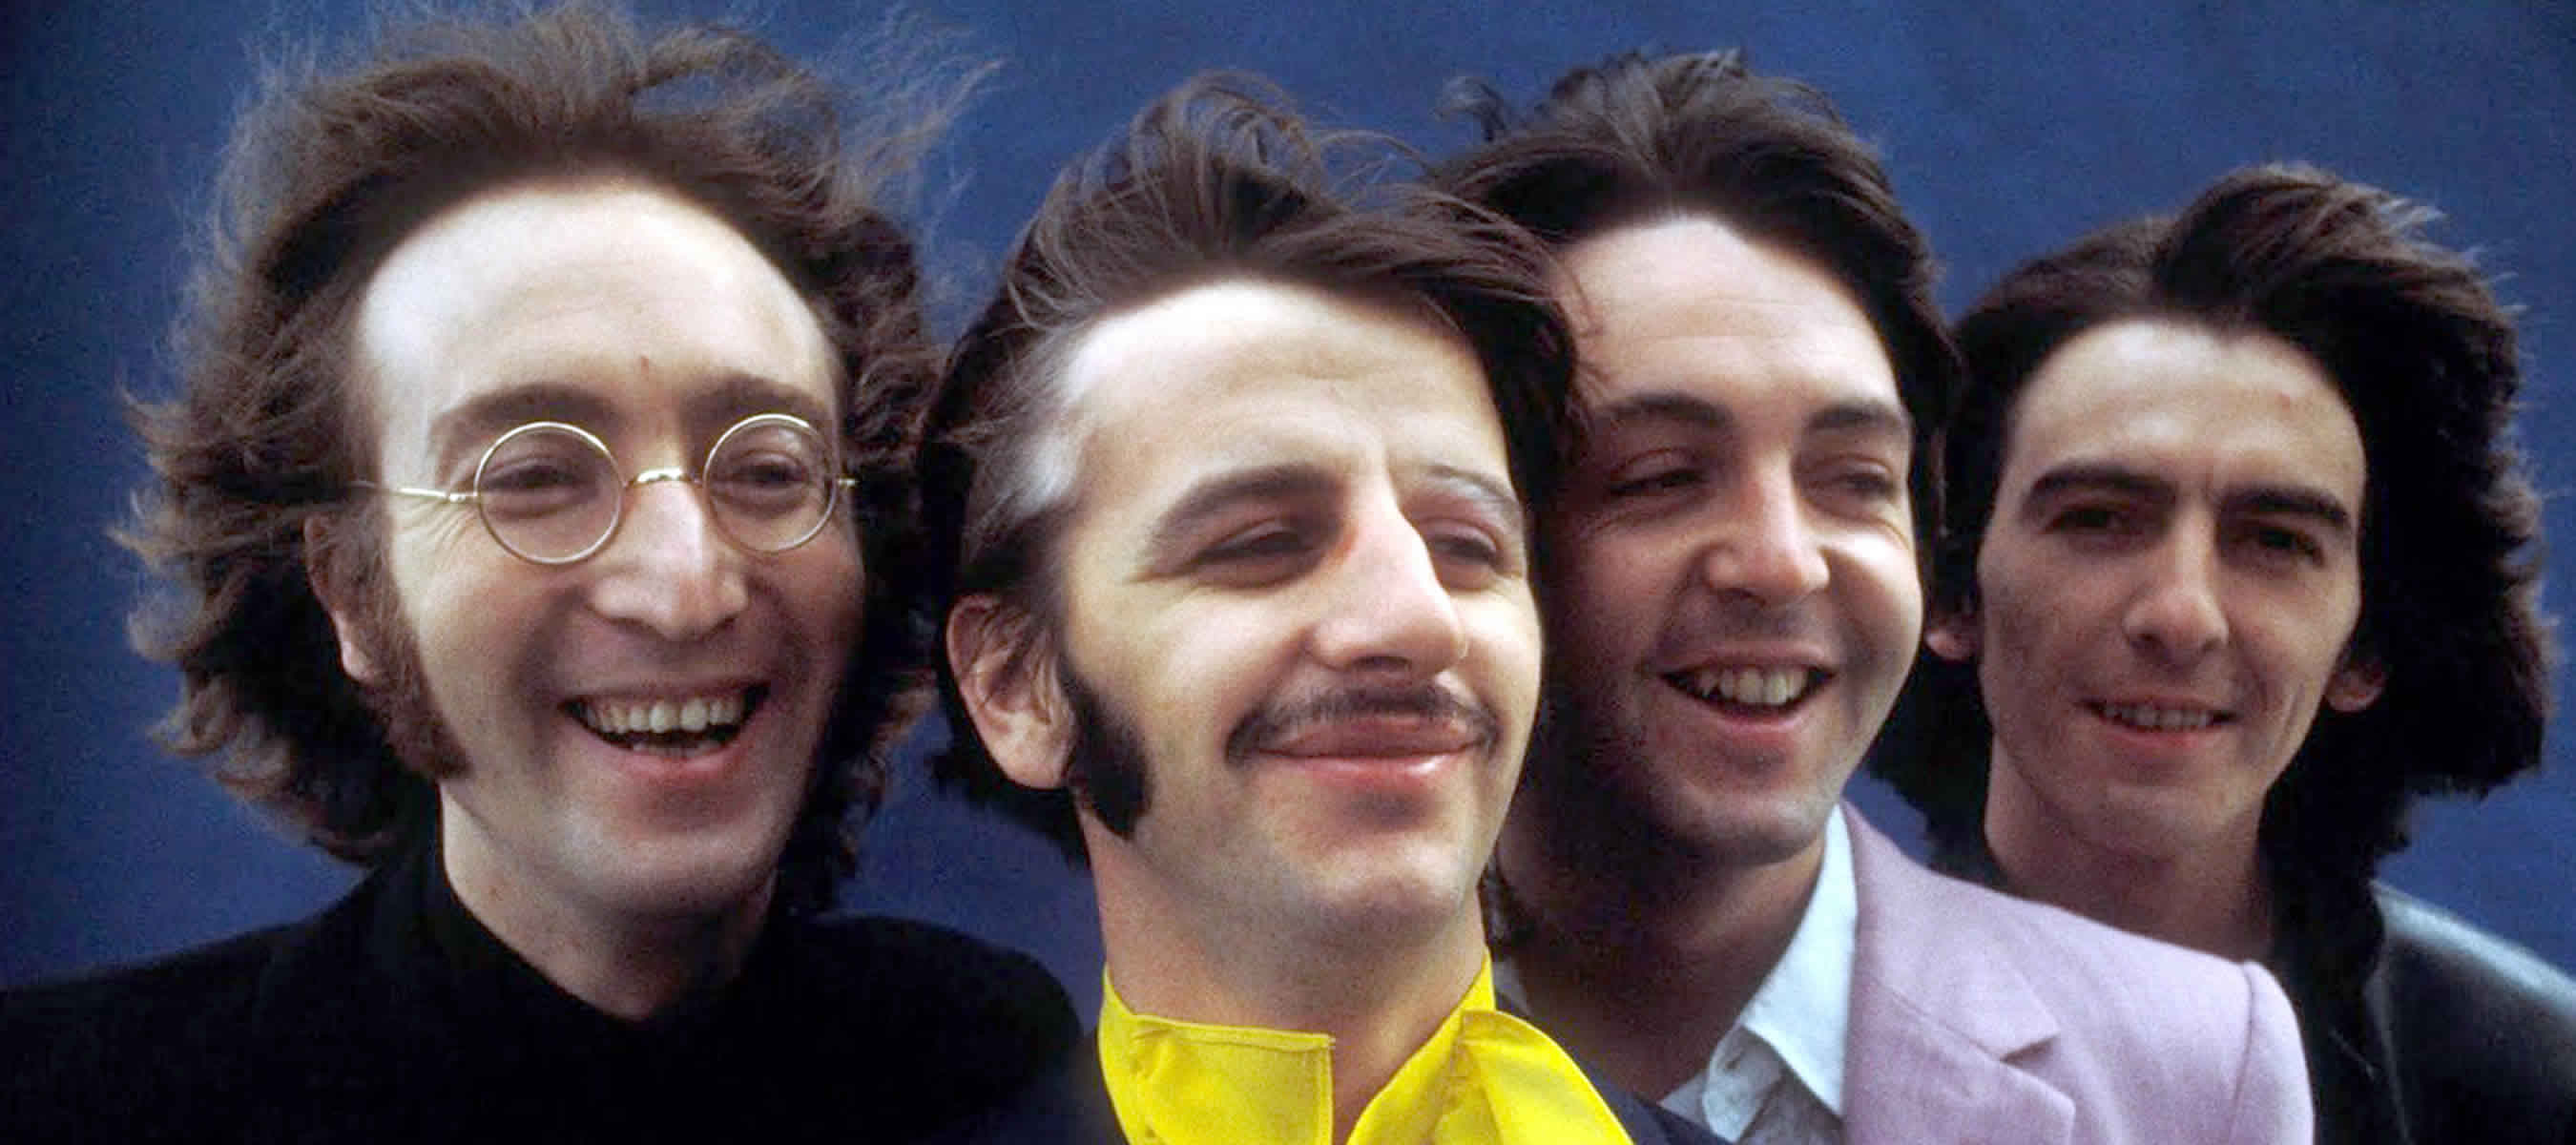 Tributo a The Beatles - smoking molly